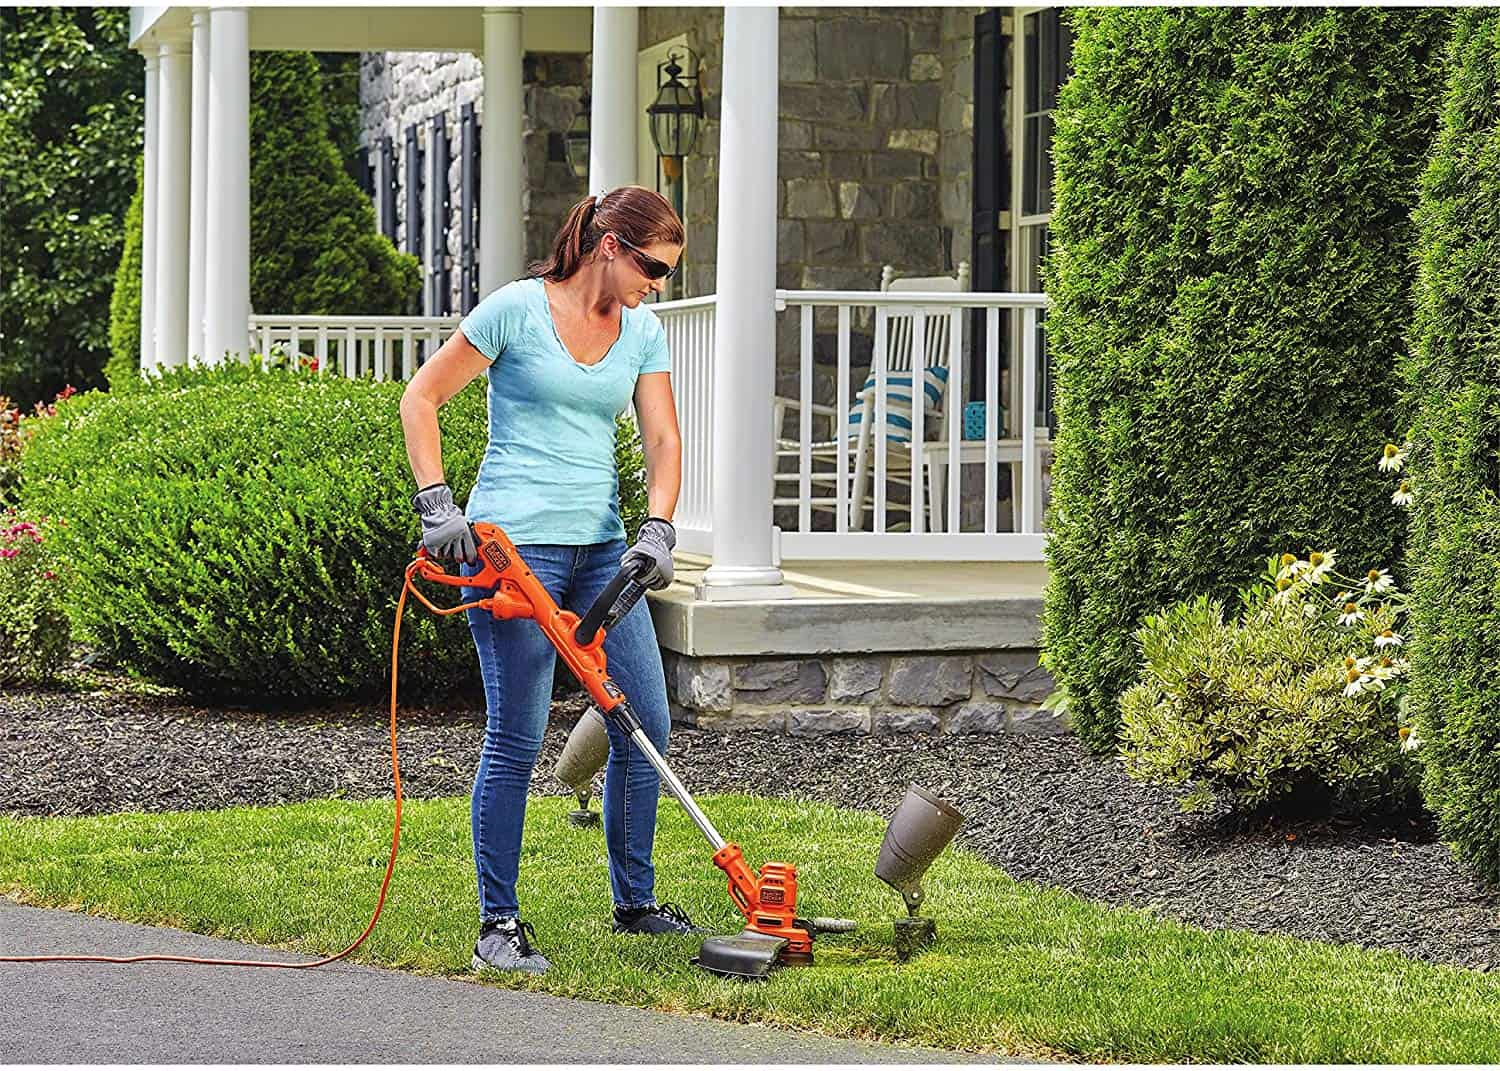 BLACK+DECKER BESTA510 6.5 Amp 14 in. AFS Electric String Trimmer-Edger